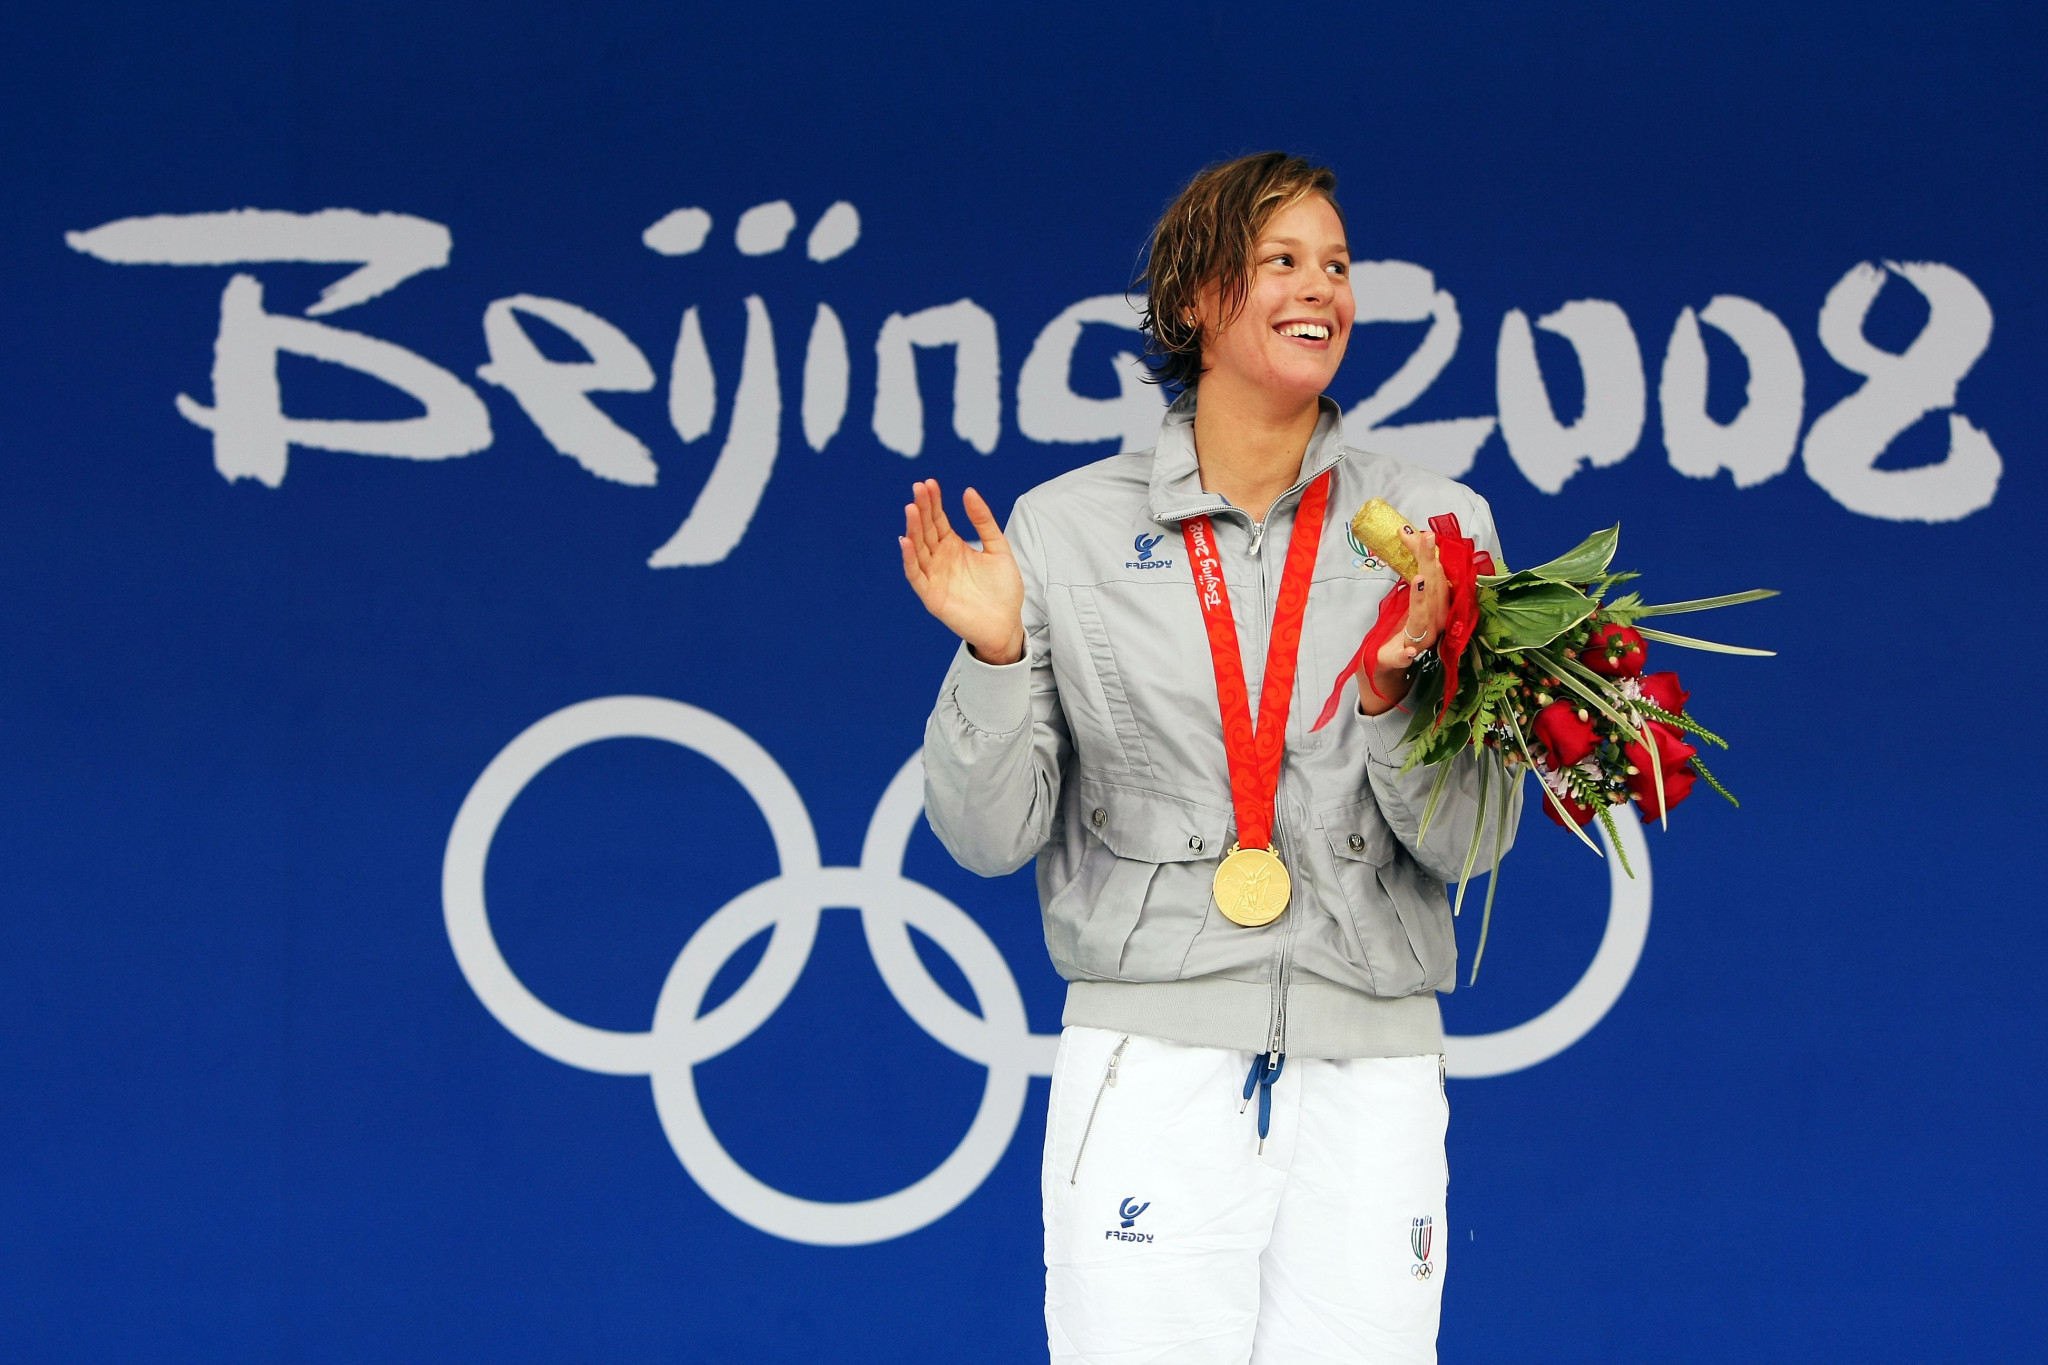 Federica Pellegrini earned Olympic gold at Beijing 2008 ©Getty Images